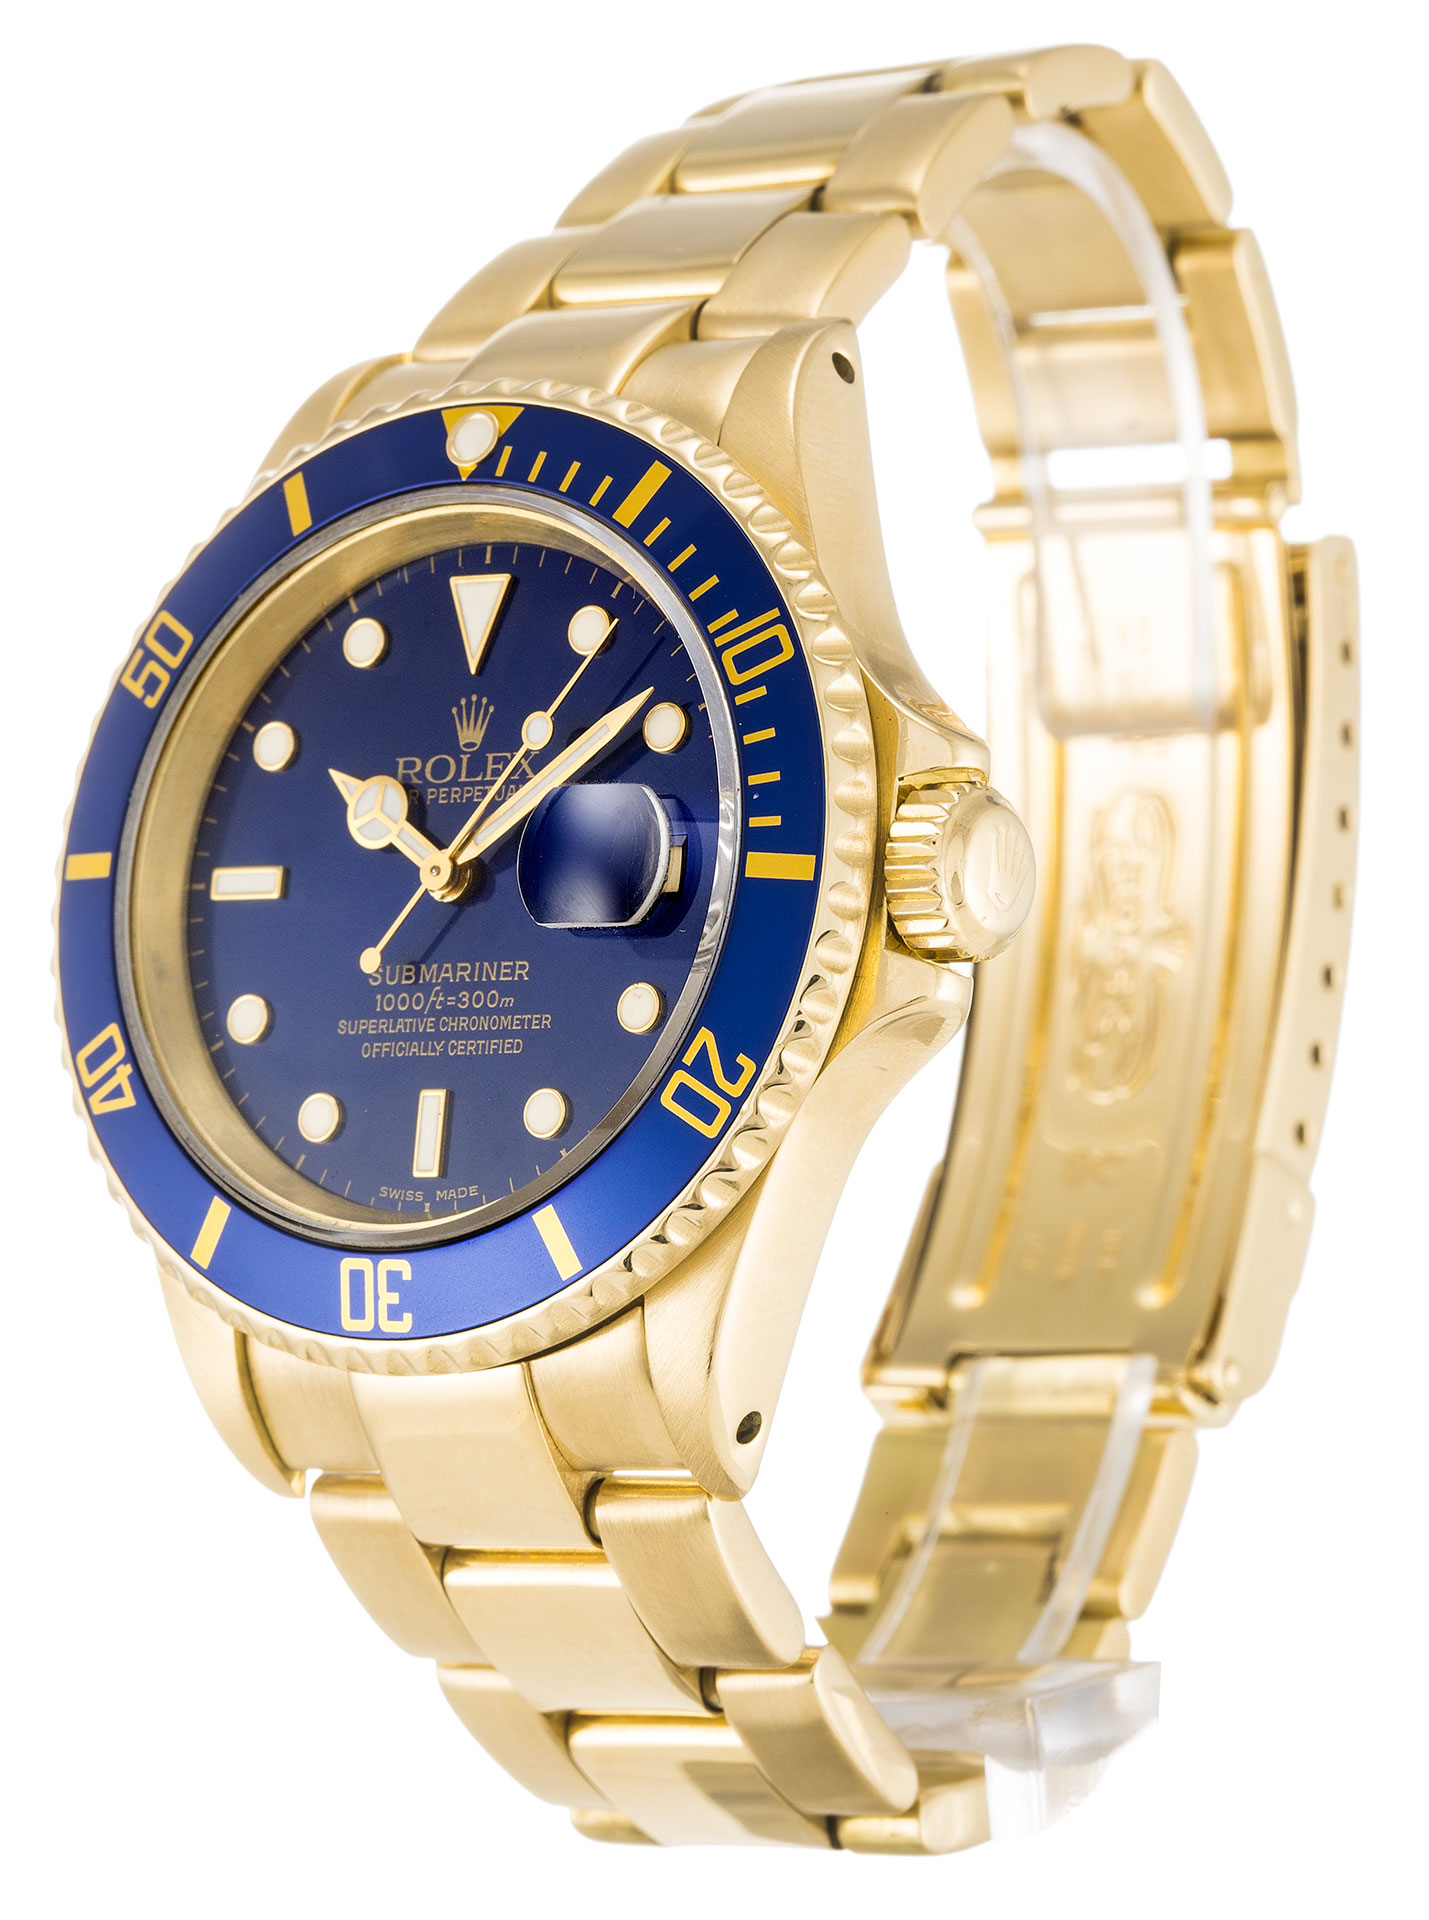 Rolex Submariner 18k Gold Blue dial Ceramic Bezel